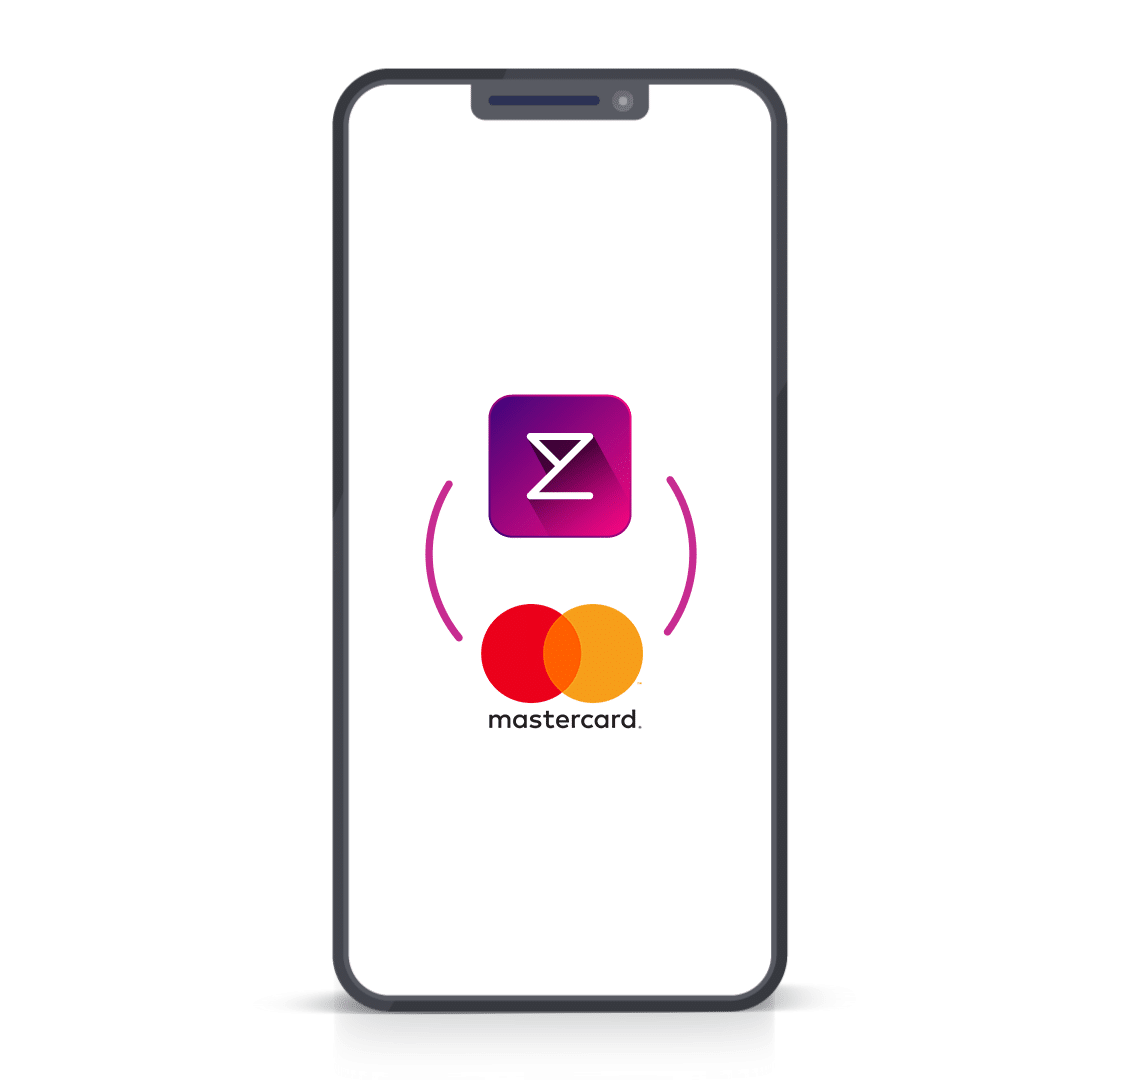 Enterpryze and Mastercard logo on phone